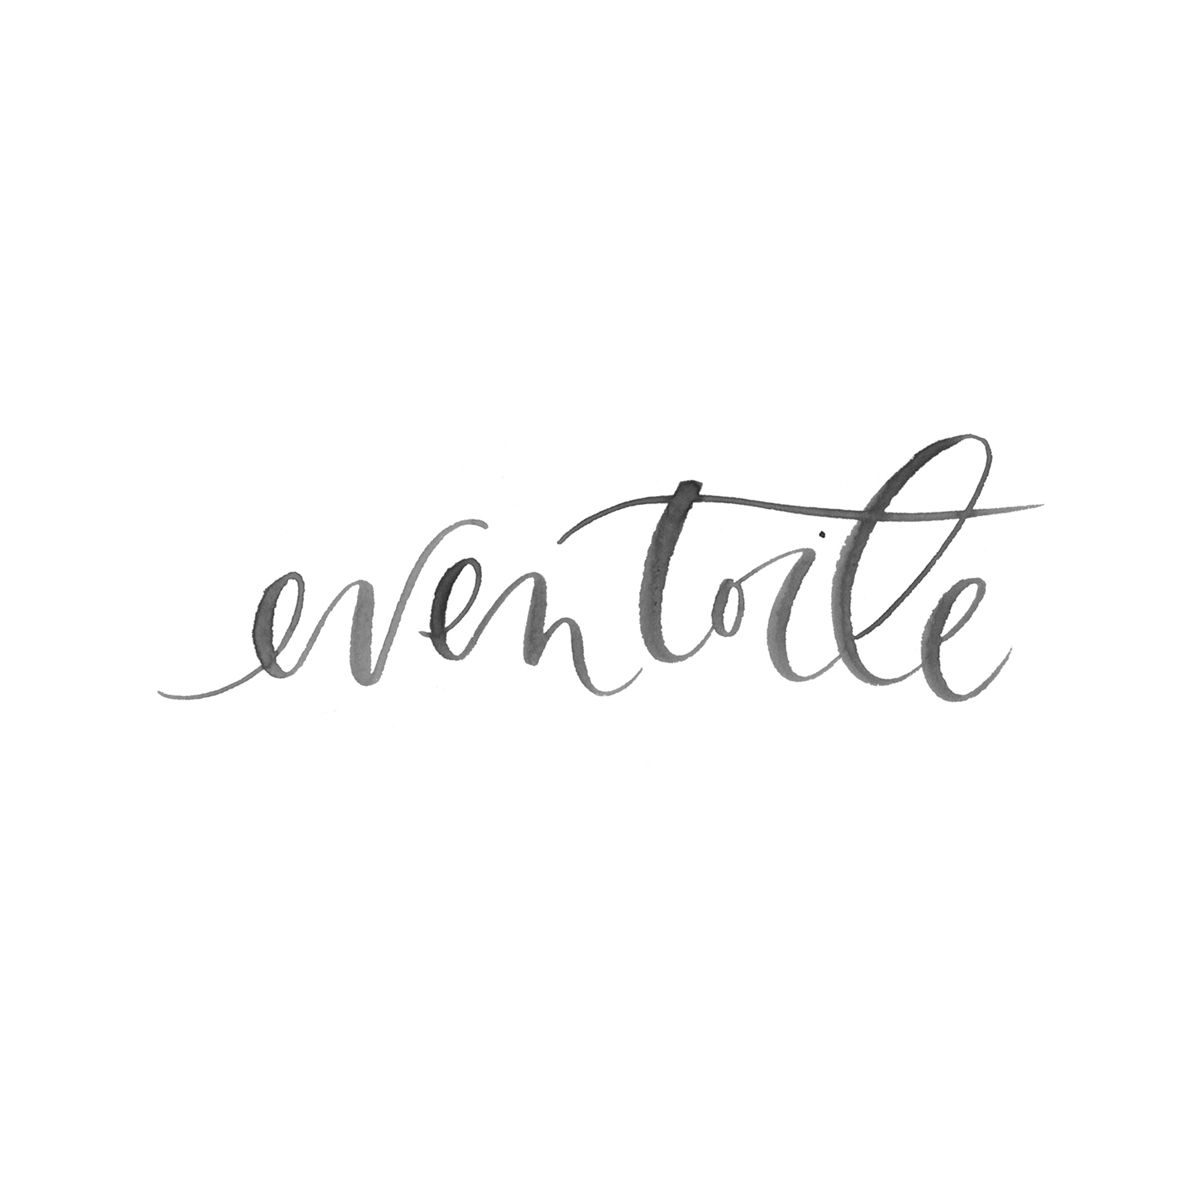 Eventoile hand-lettered logo